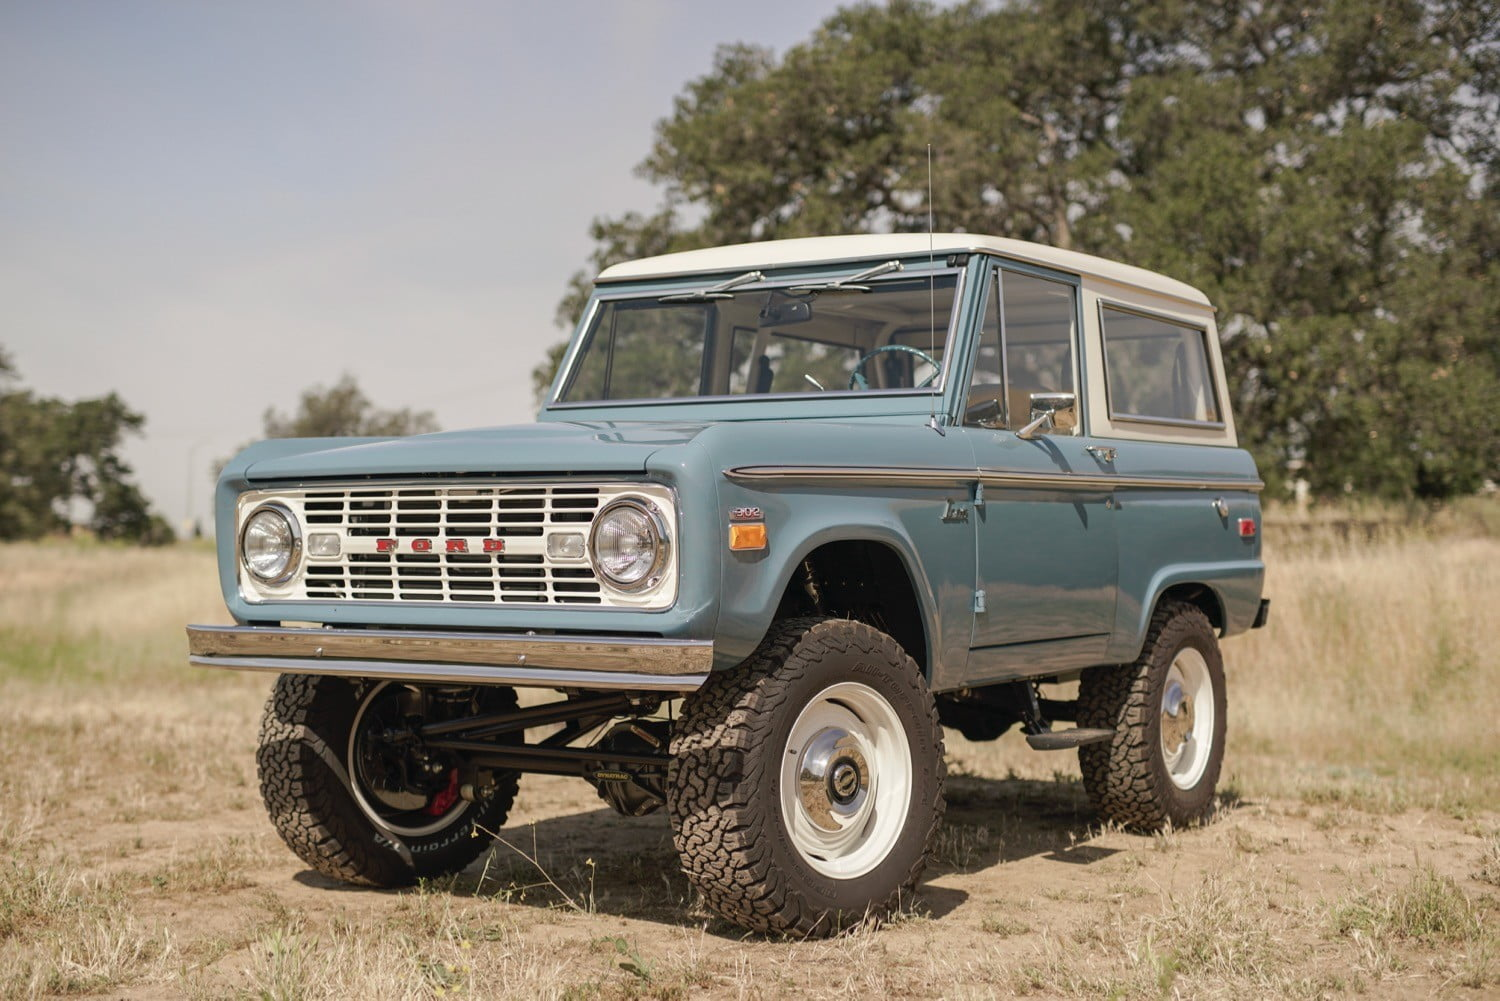 Icon old school br is a brand new 1960s ford bronco digital trends